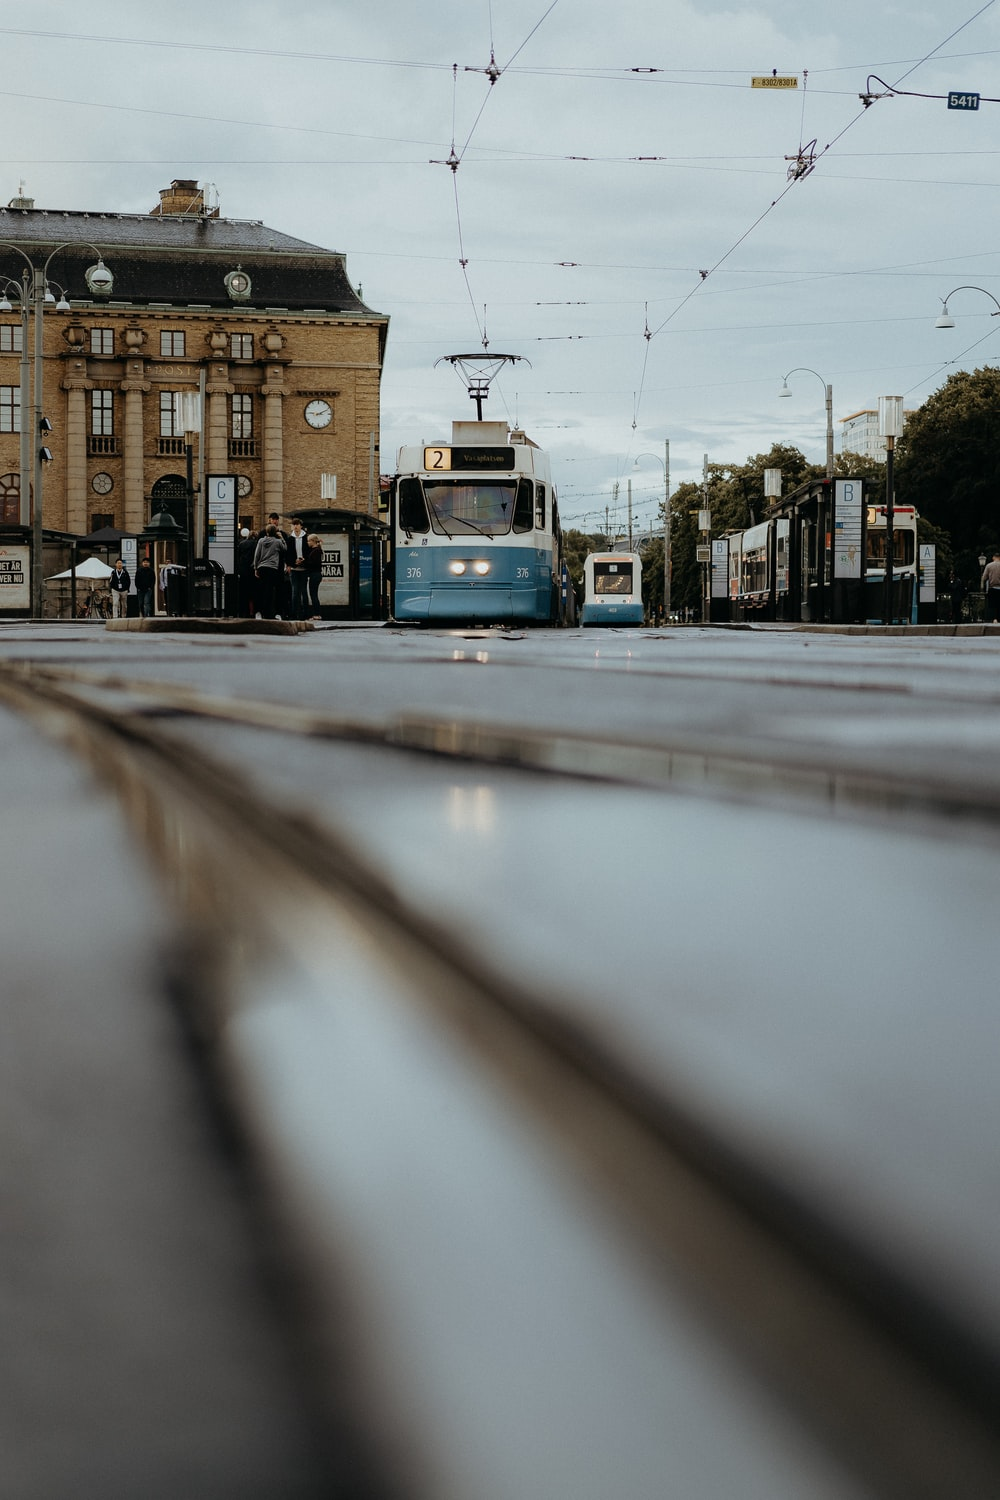 blue and white tram